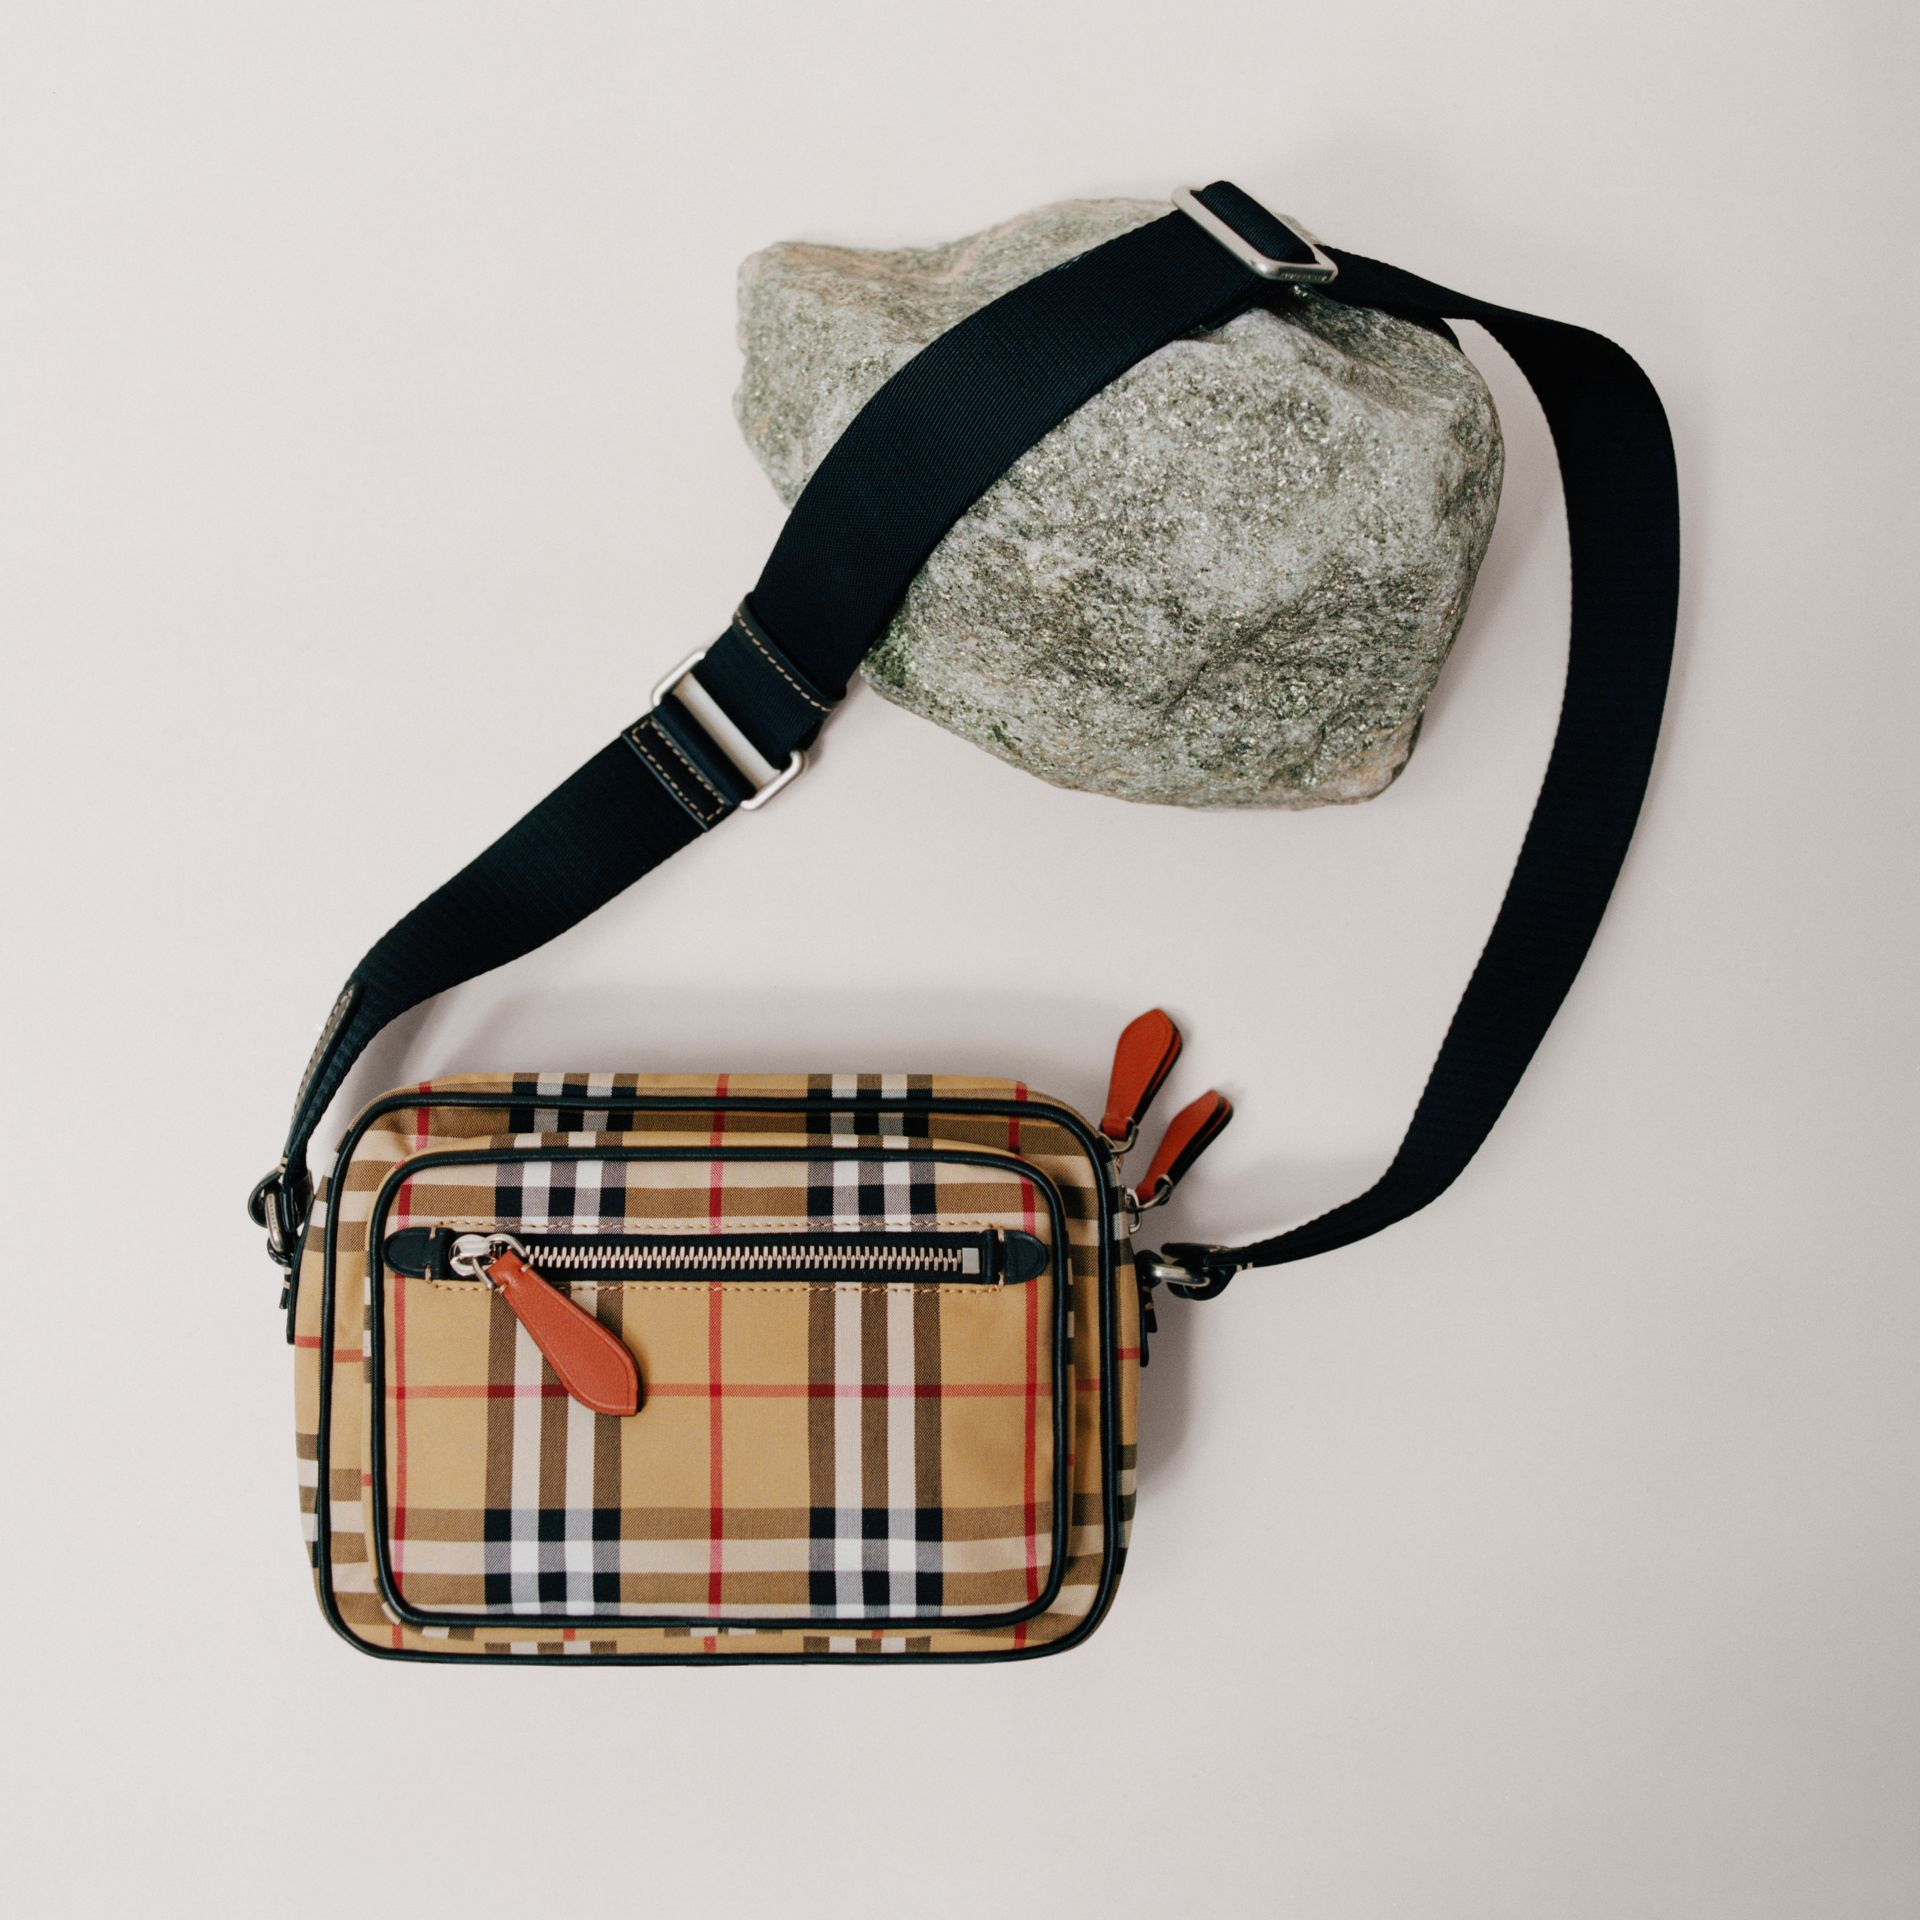 Vintage Check and Leather Crossbody Bag in Clementine - Men | Burberry - gallery image 1